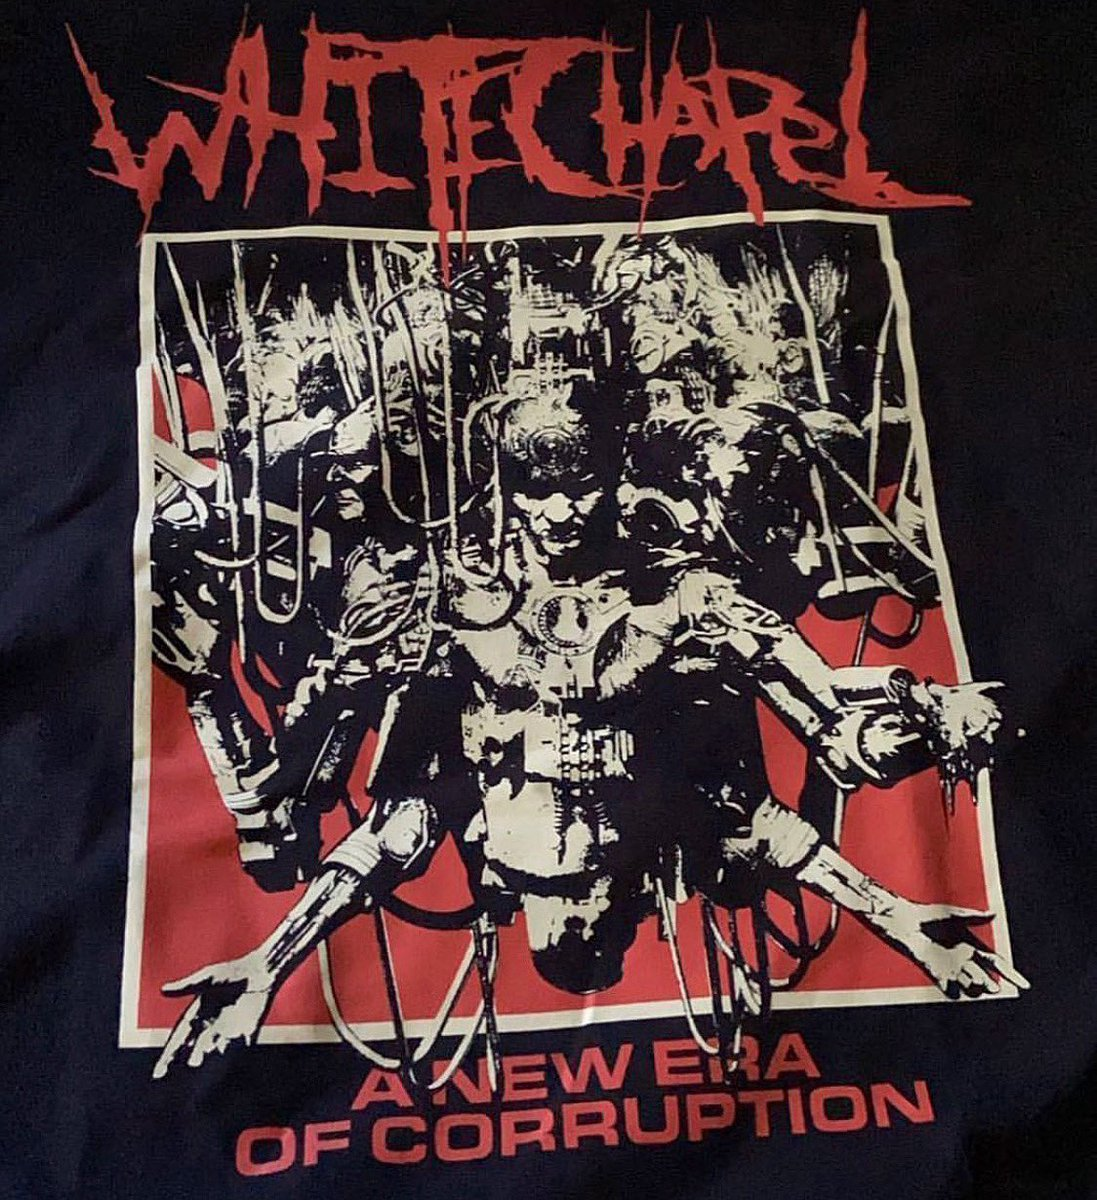 Most sizes of the New Era longsleeve are gone but we have all sizes of the black t-shirt available.  Grab yours before they are gone at https://t.co/Ju1dTx4yMc ! @merchnow https://t.co/qXWQHwr3G5